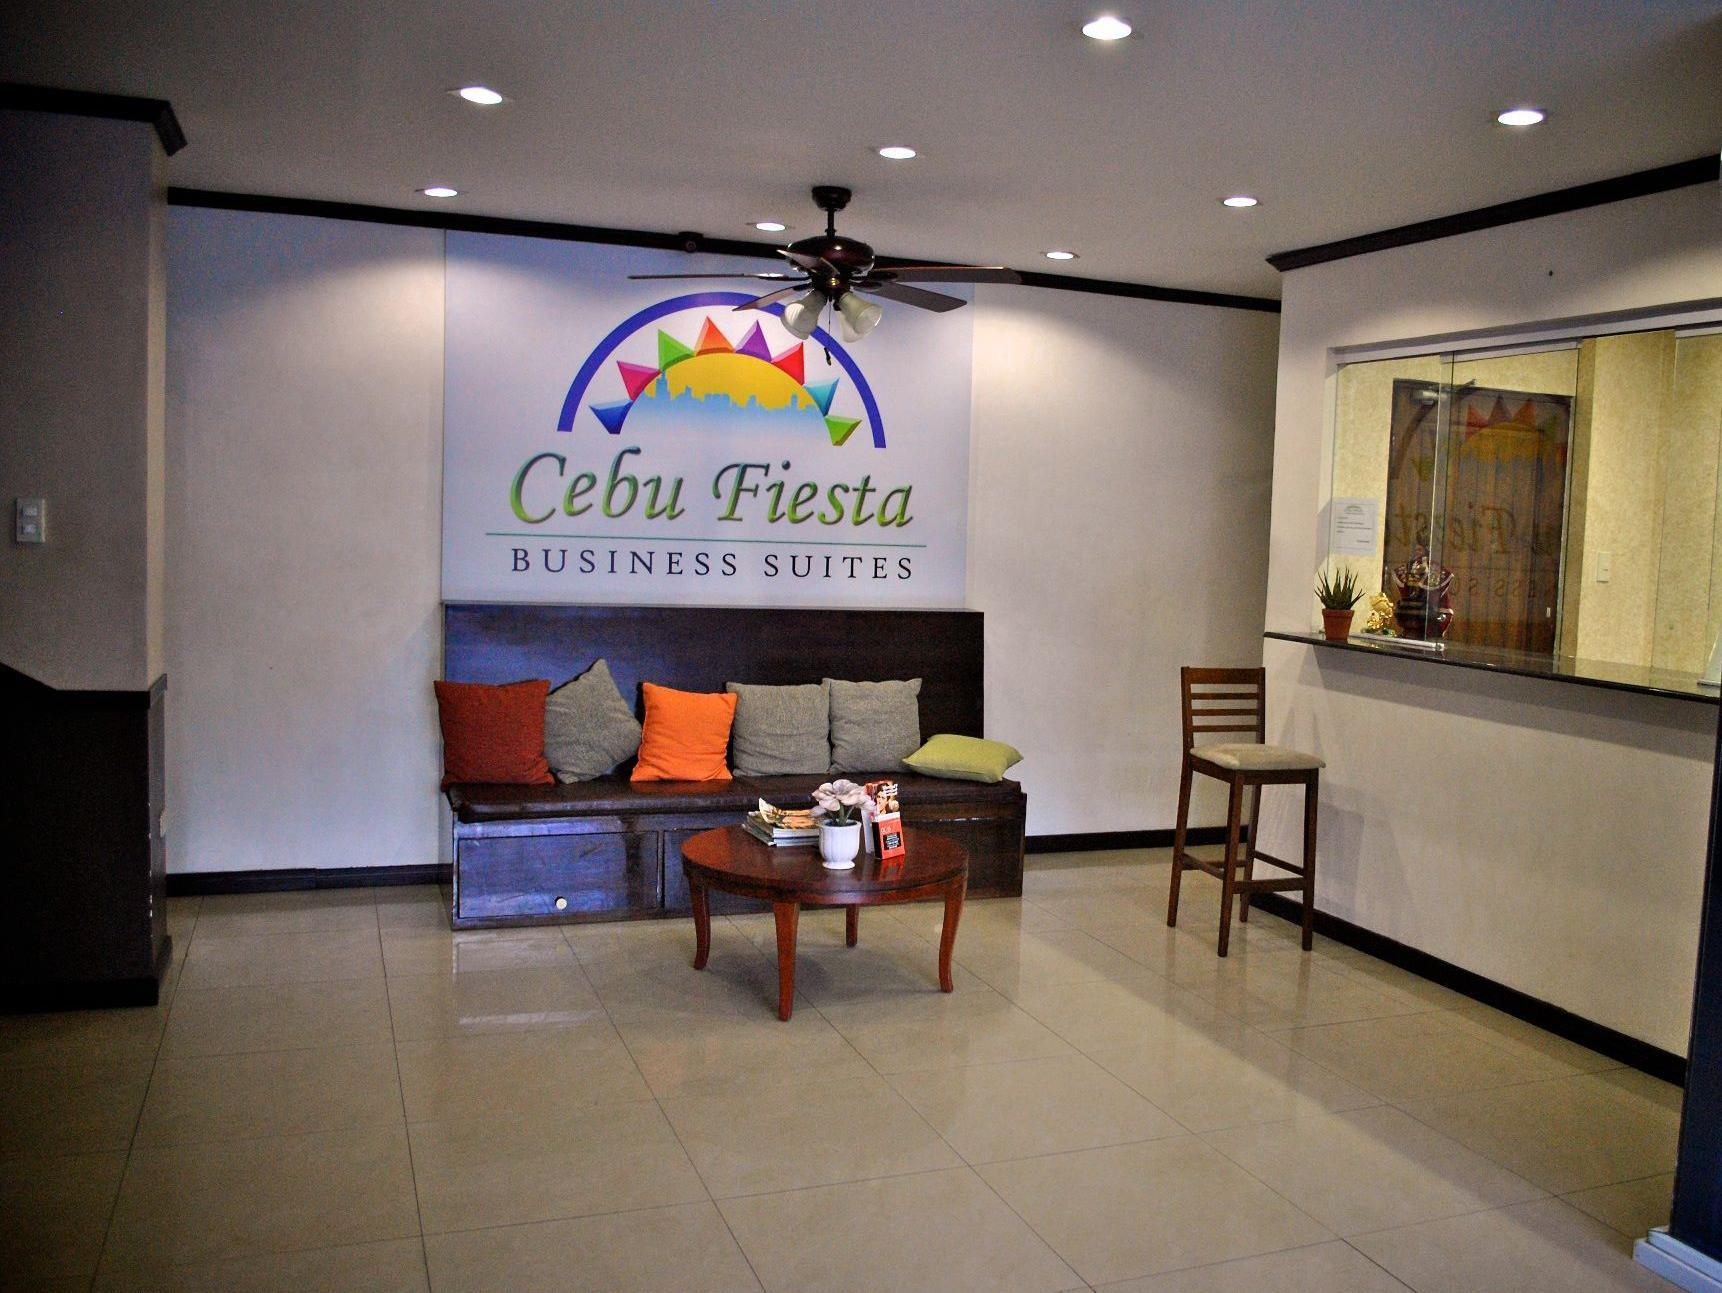 Cebu Fiesta Business Suites Себу